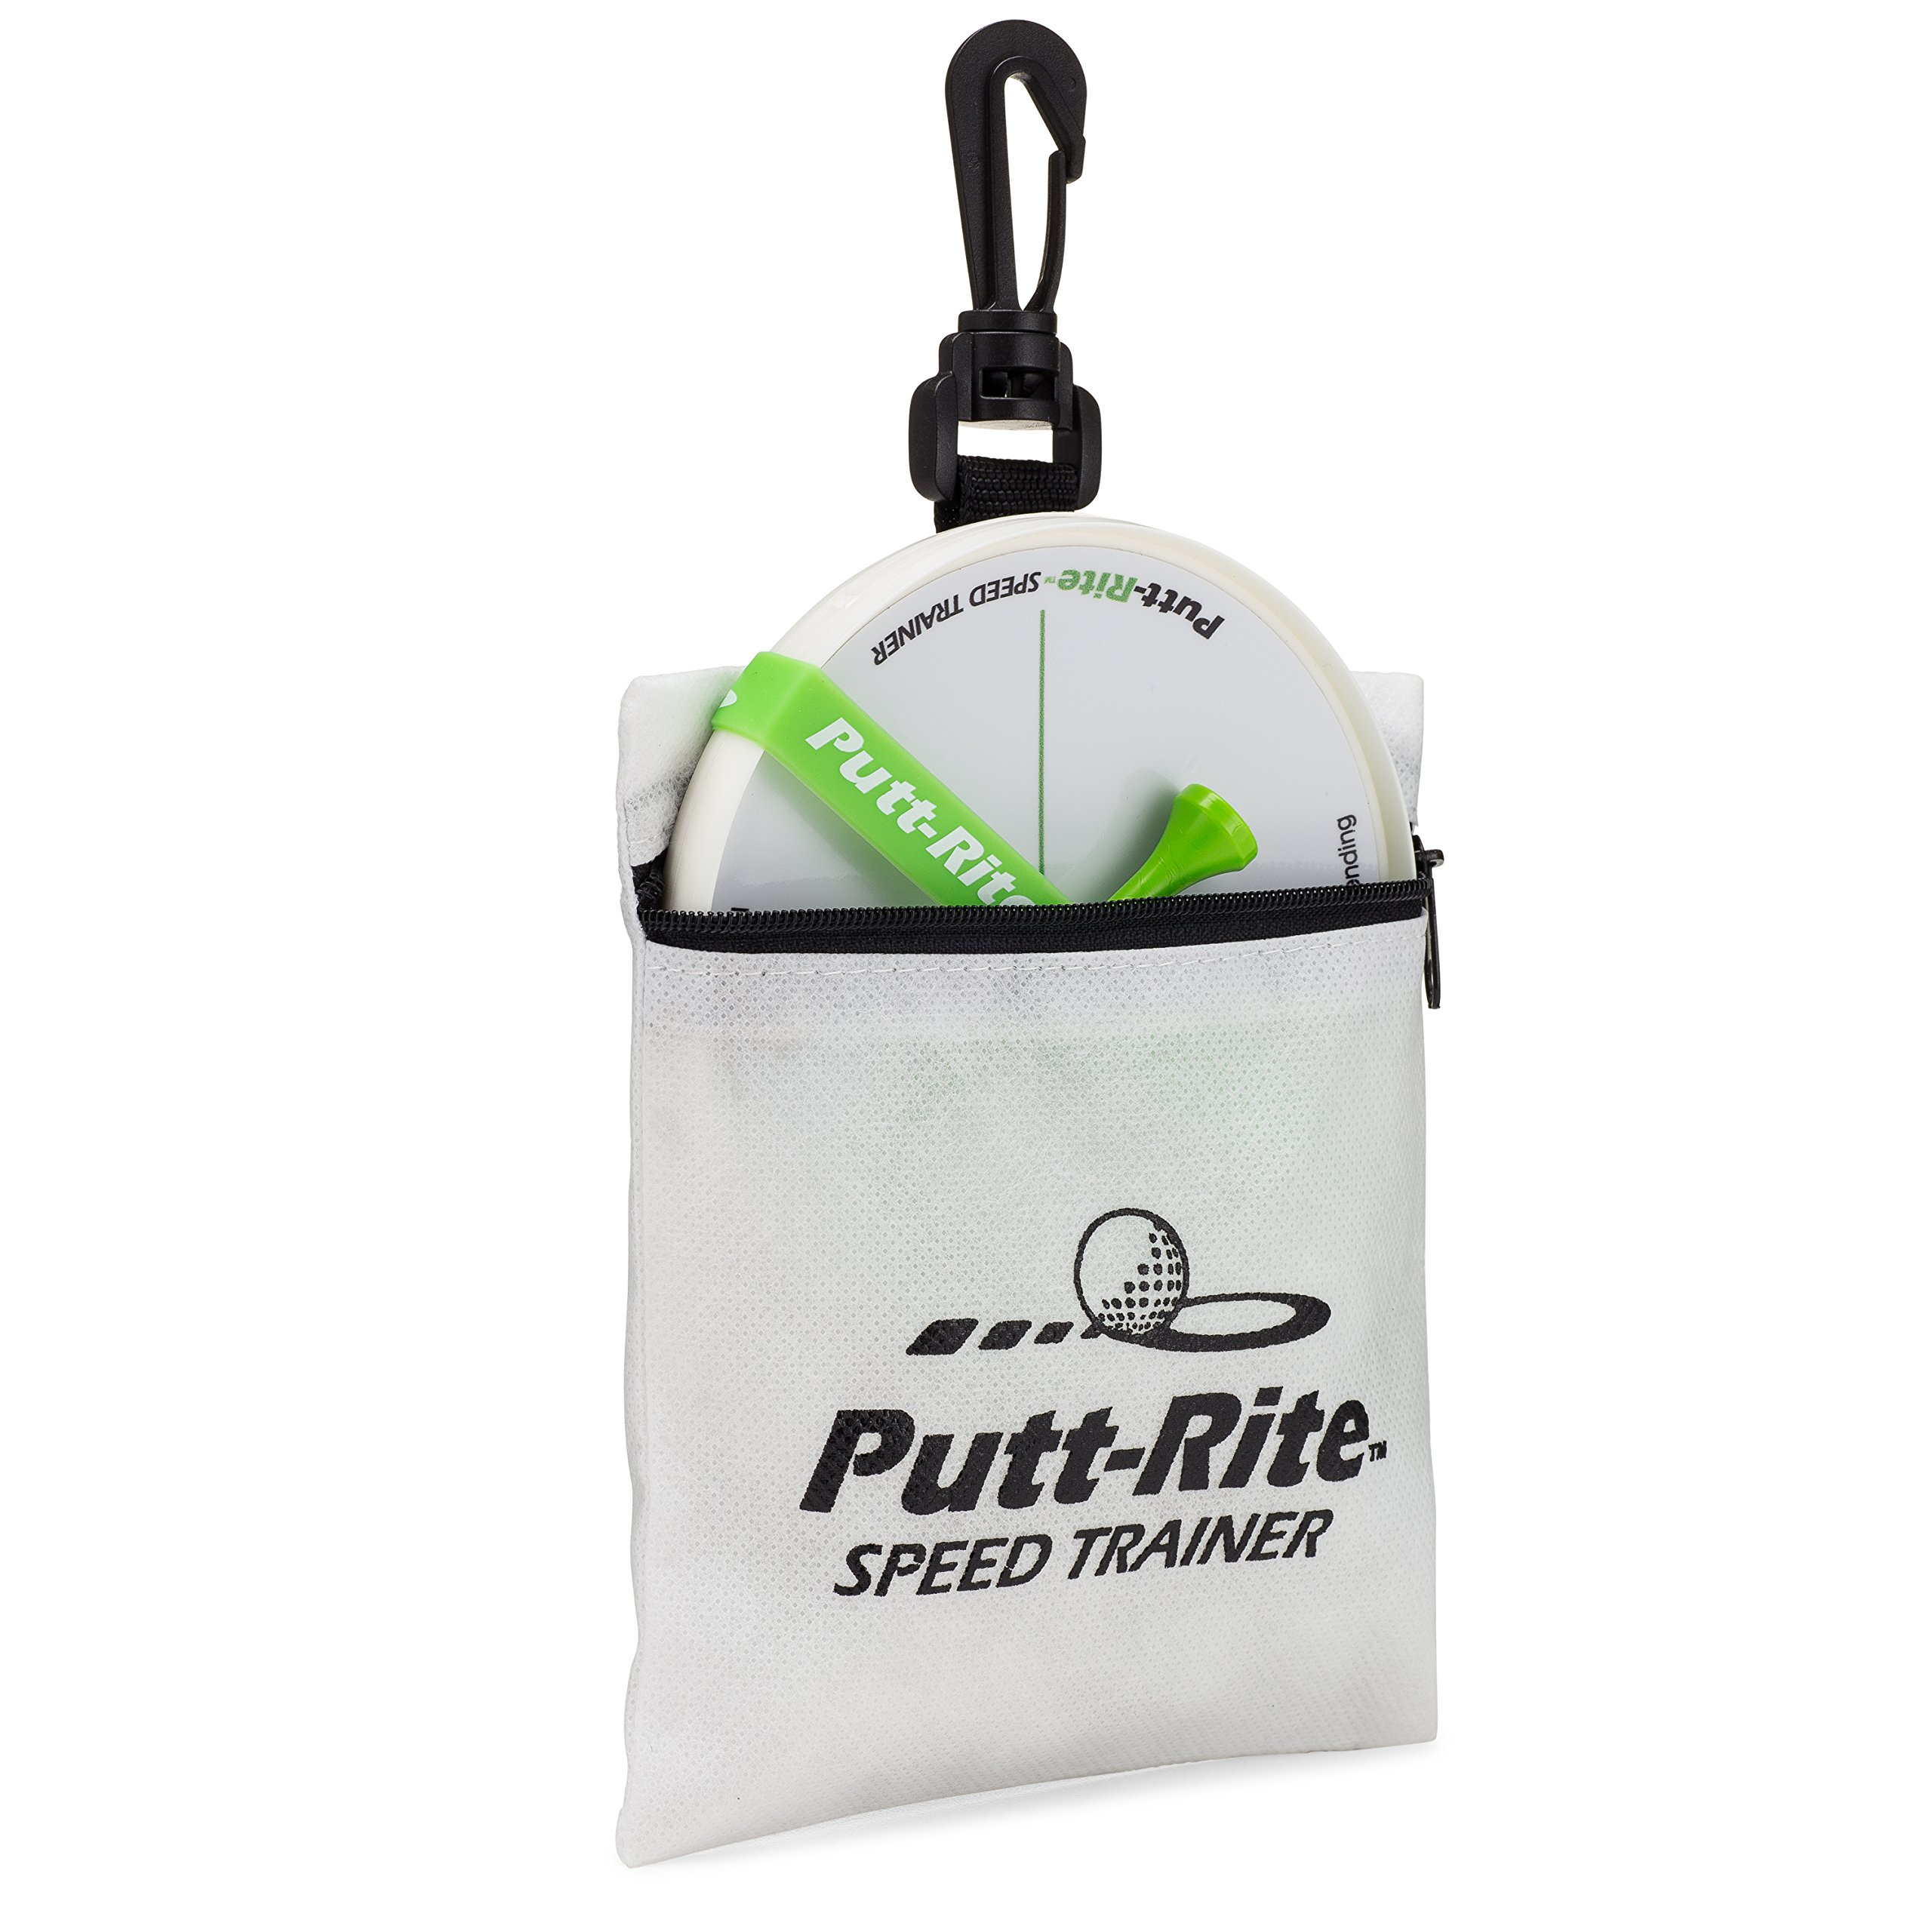 Putt-Rite Speed Trainer - Putting Training Aid to Perfect Putting Speed by Putt-Rite (Image #2)